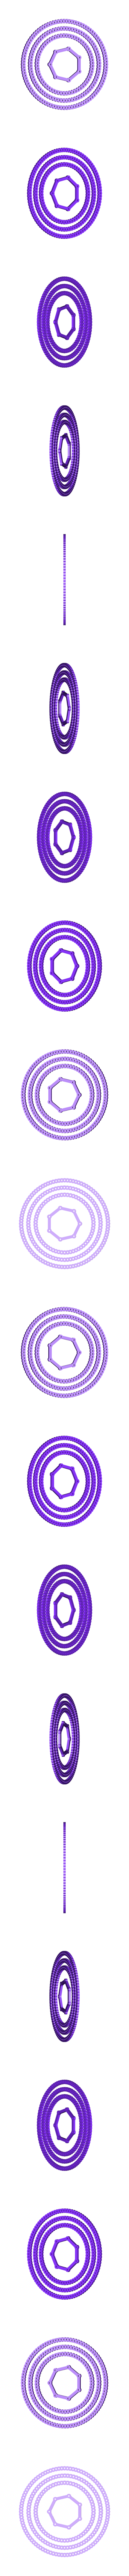 concentric rings.stl Download STL file Modular Mobile System • 3D printable template, jasso